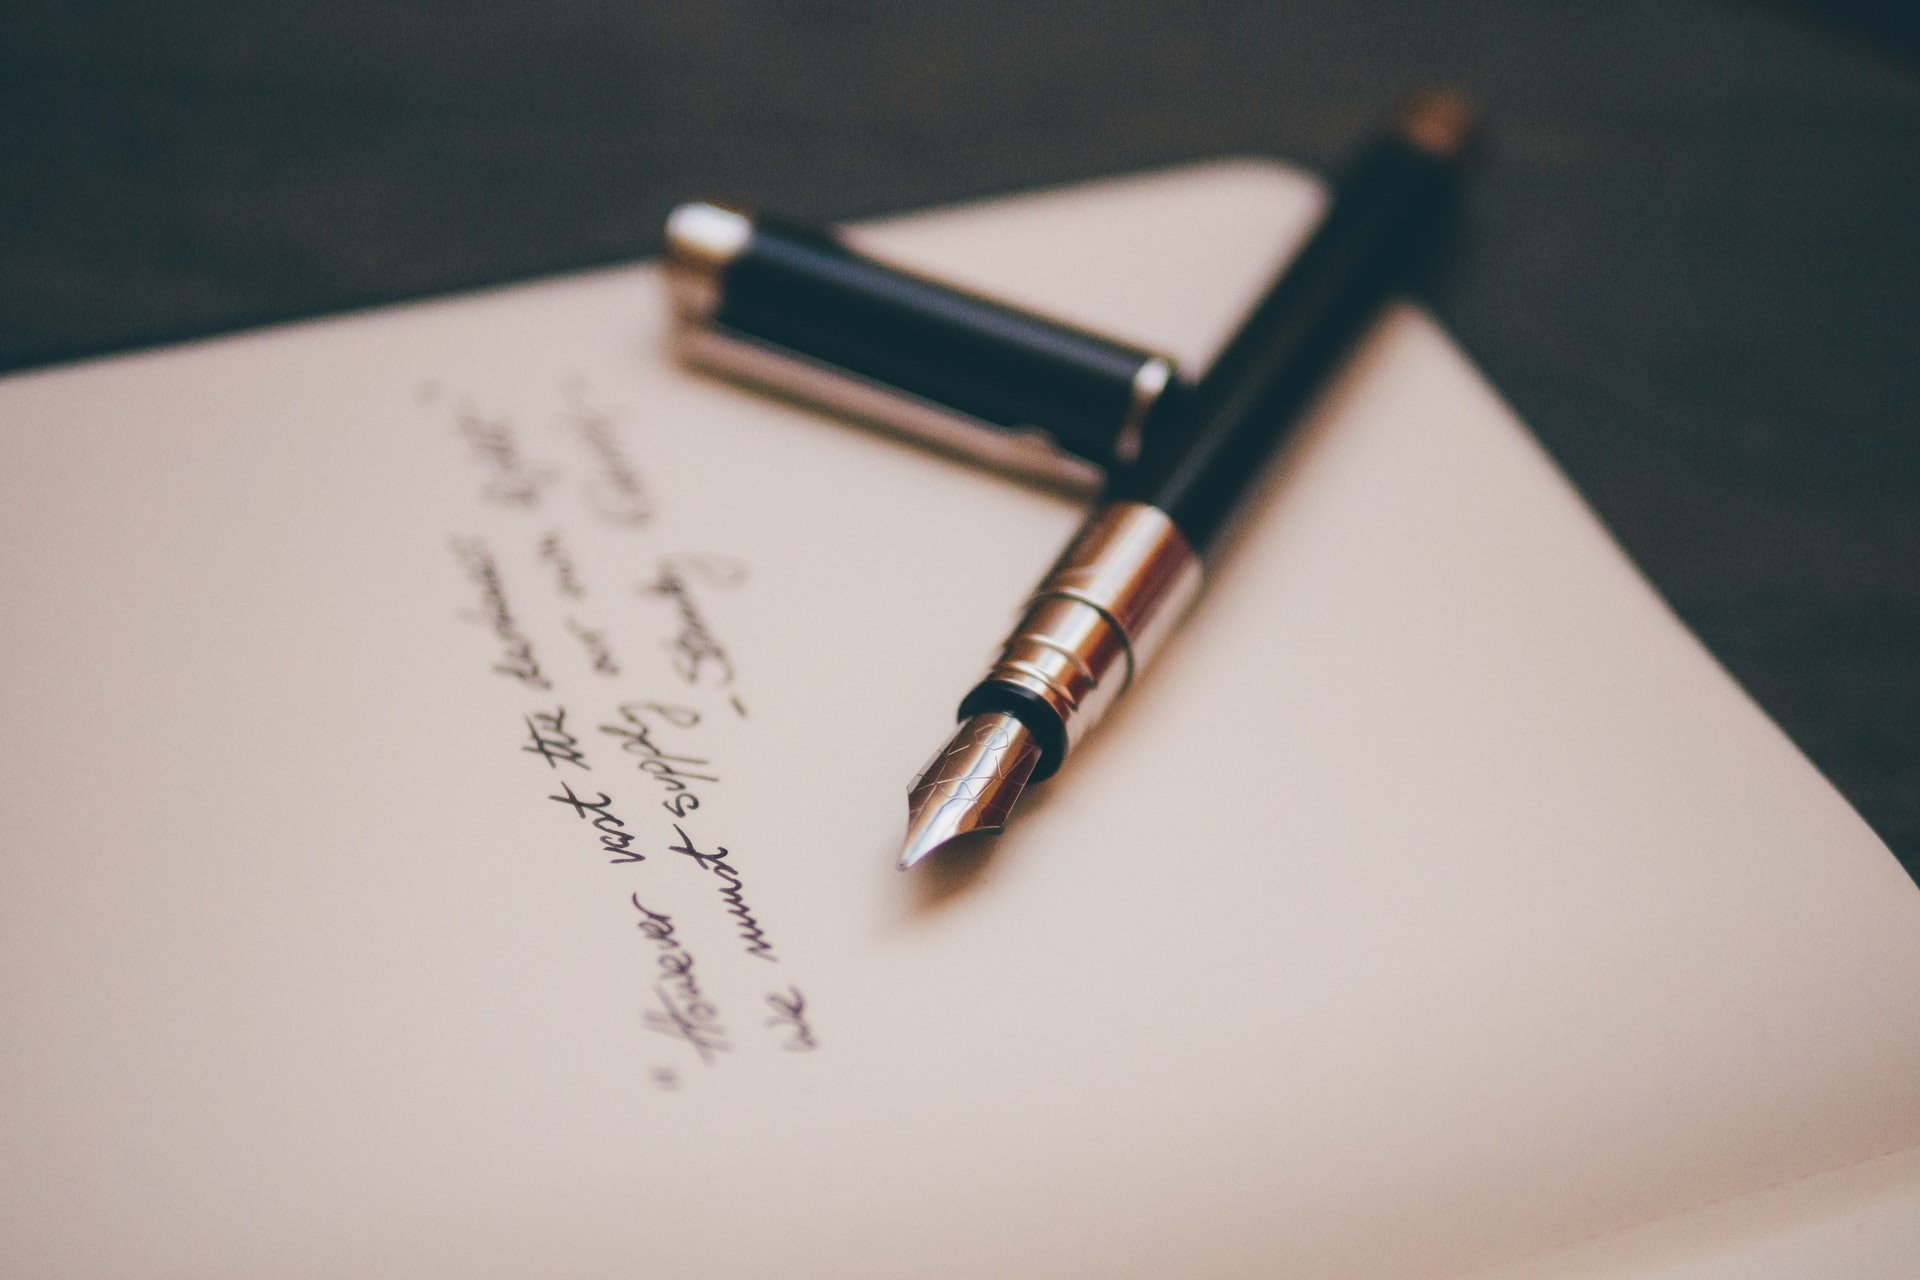 Proper estate planning results in a smooth transfer of your assets to your heirs. Here's how to know whether to choose a will, a trust or both.